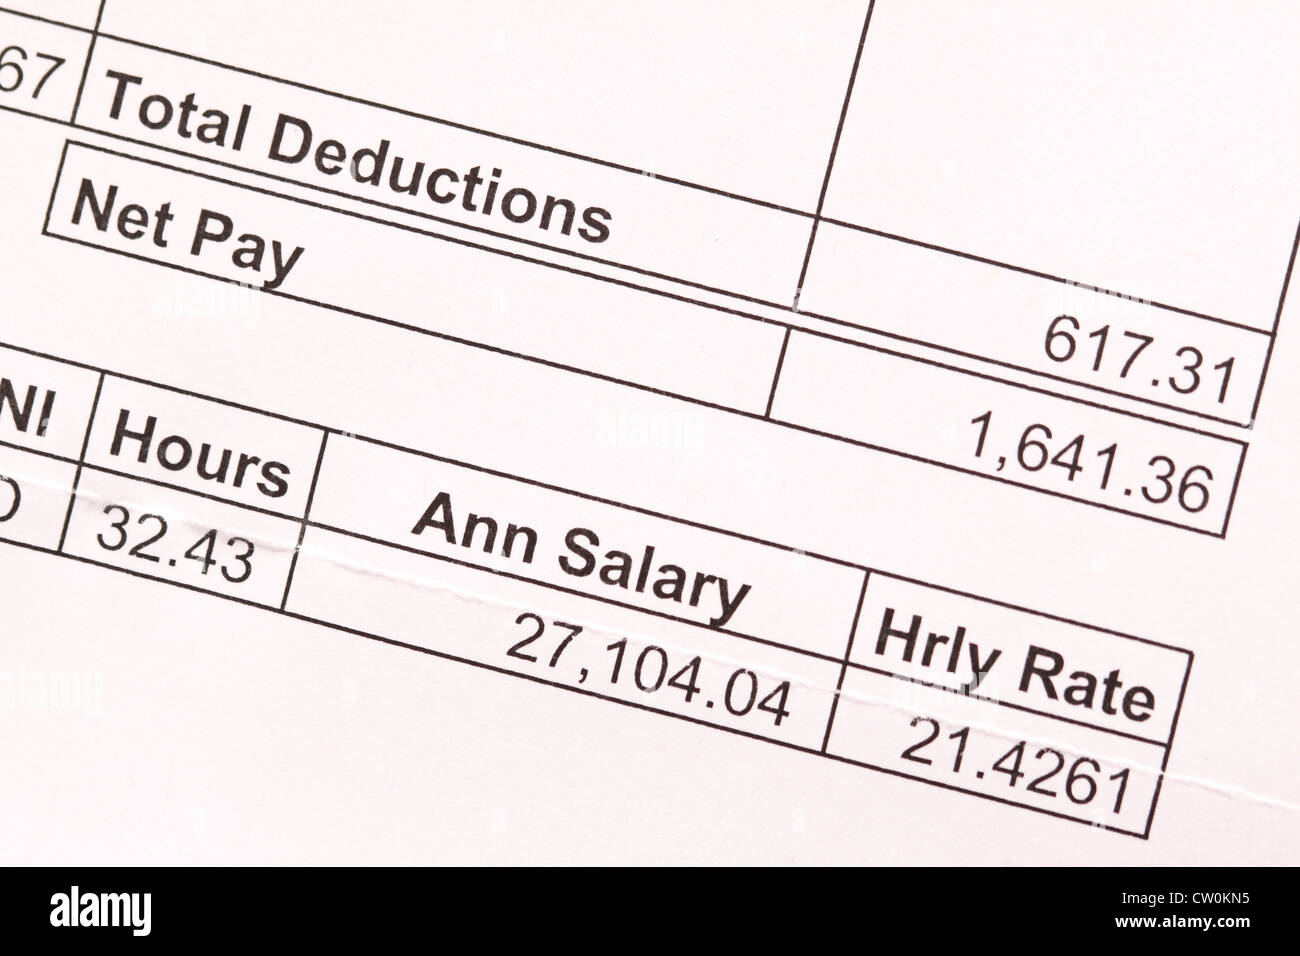 Payslip pay slip wage packet Net Pay - Stock Image